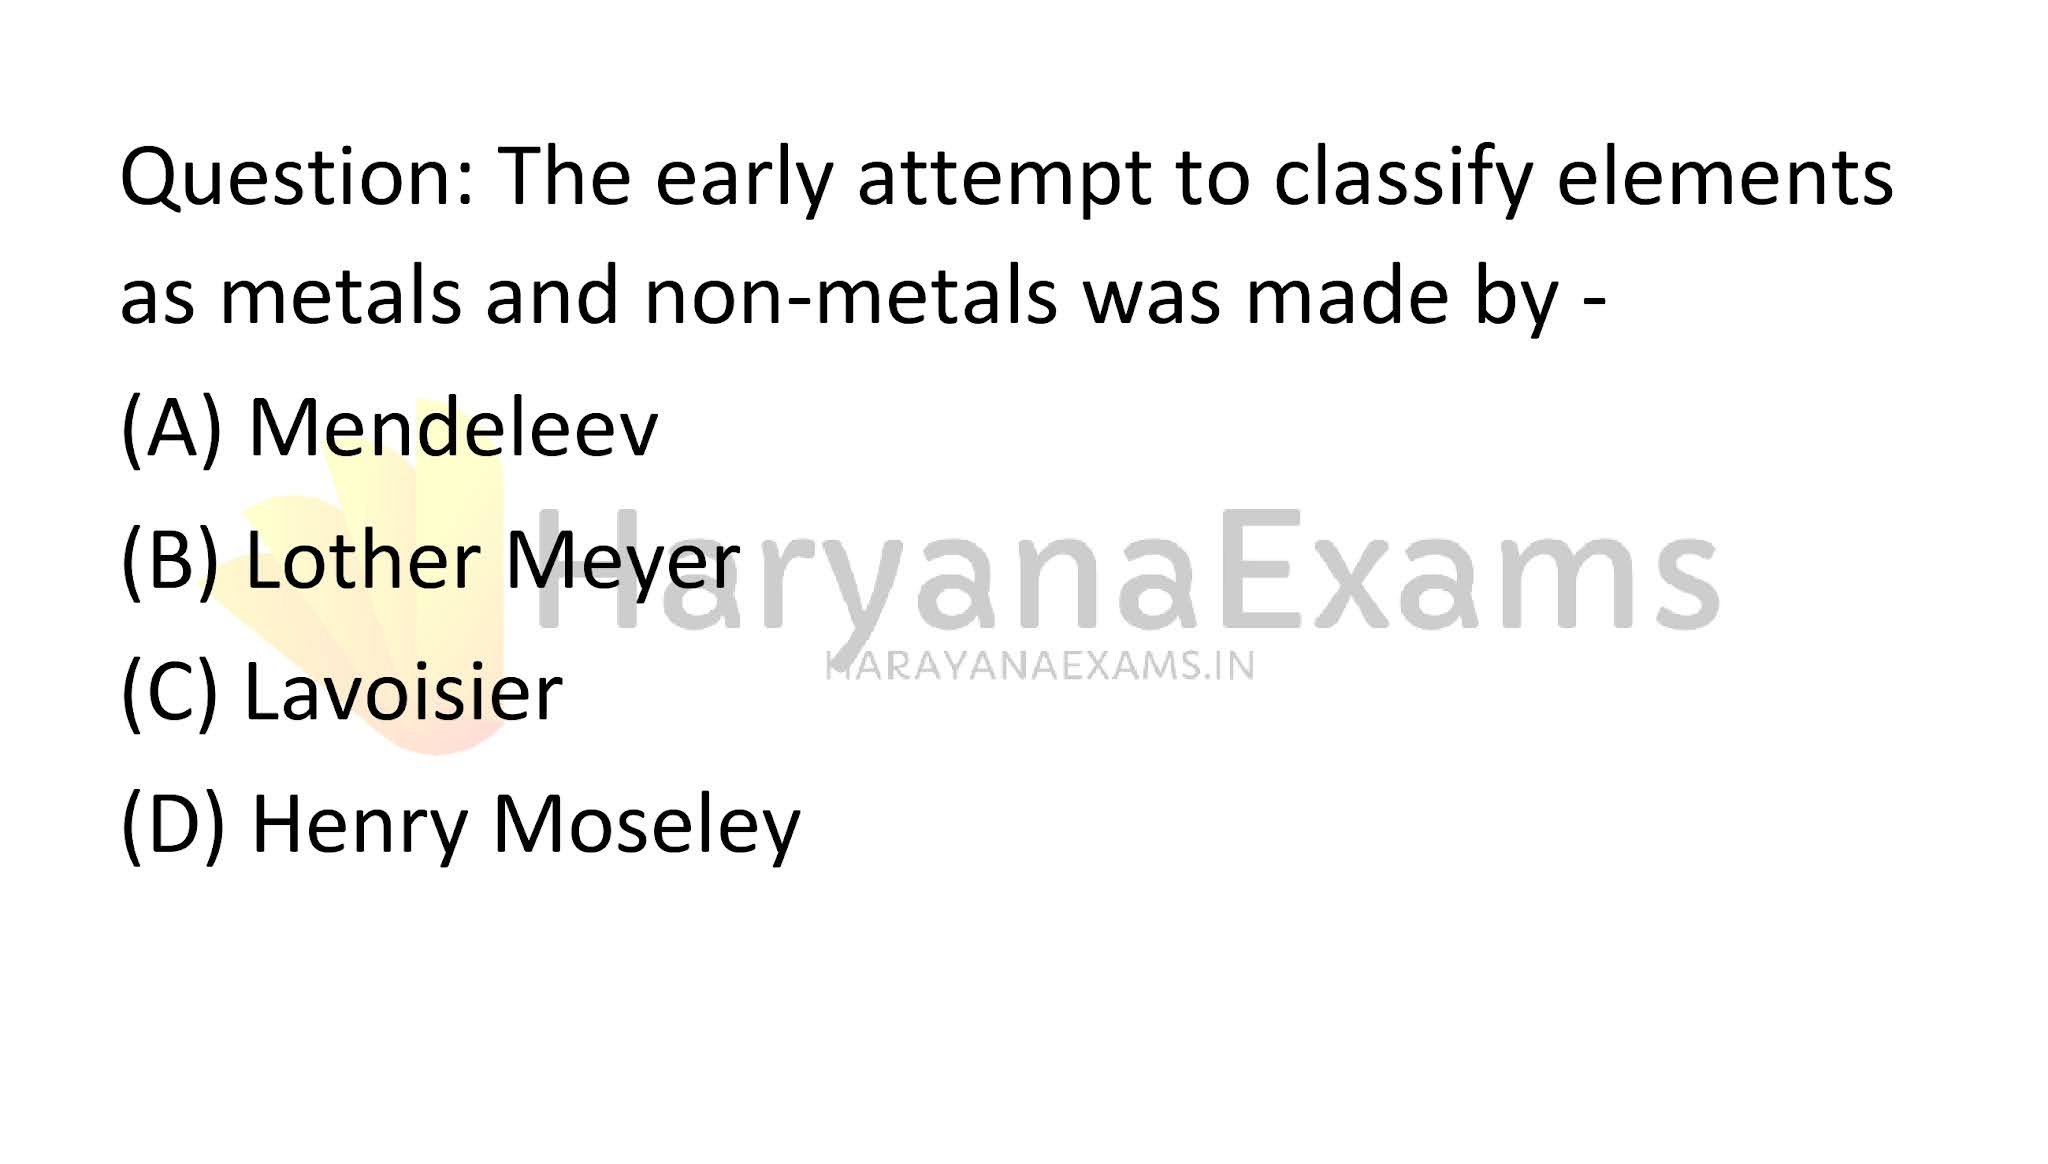 The early attempt to classify elements as metals and non-metals was made by -